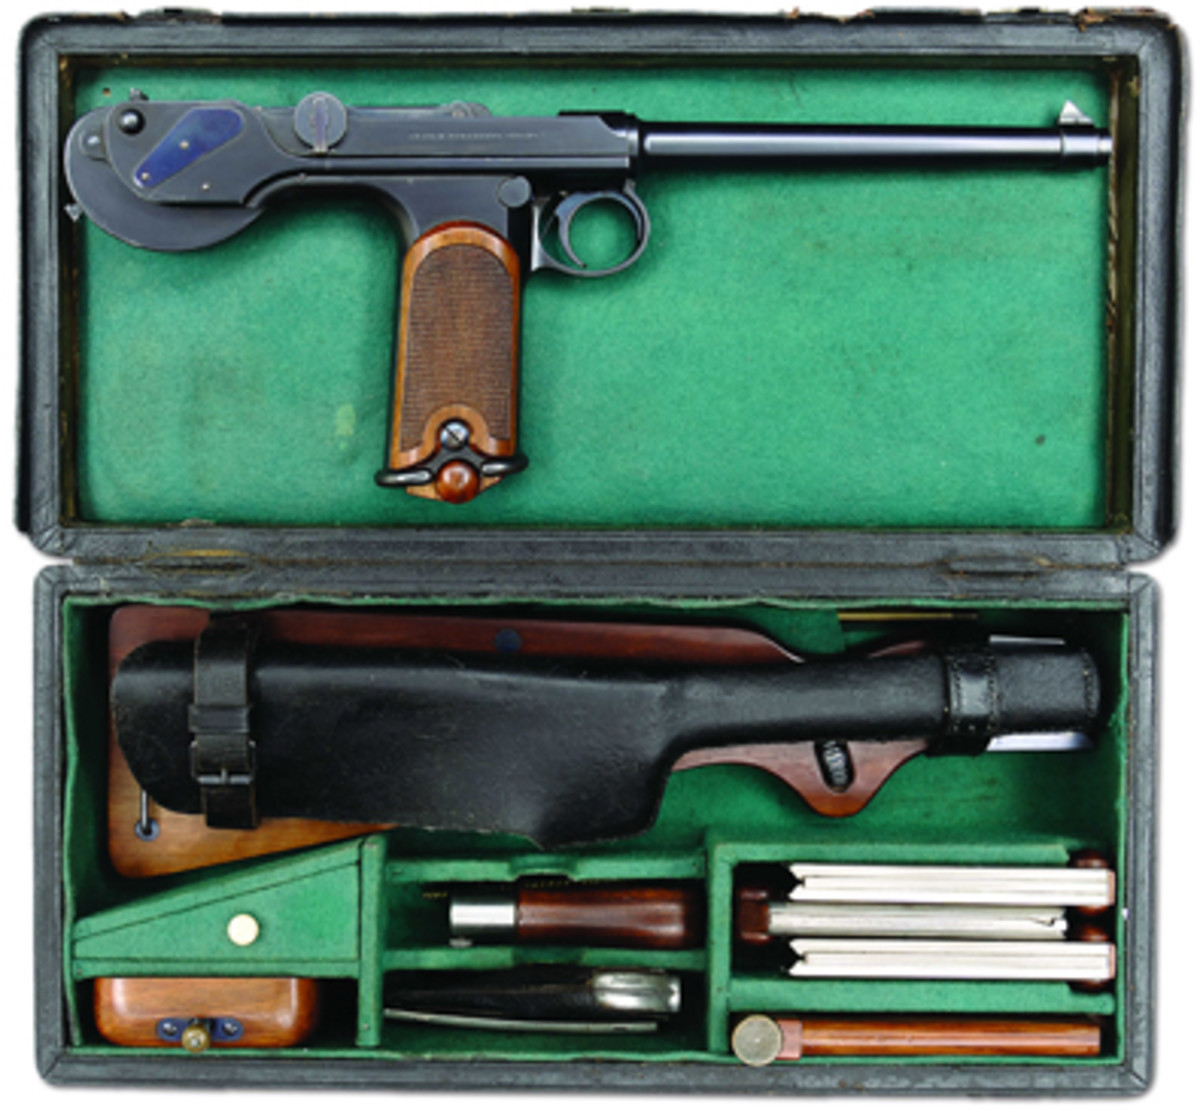 Cased Model 1893 Borchardt pistol by Loewe sold for $103,500.